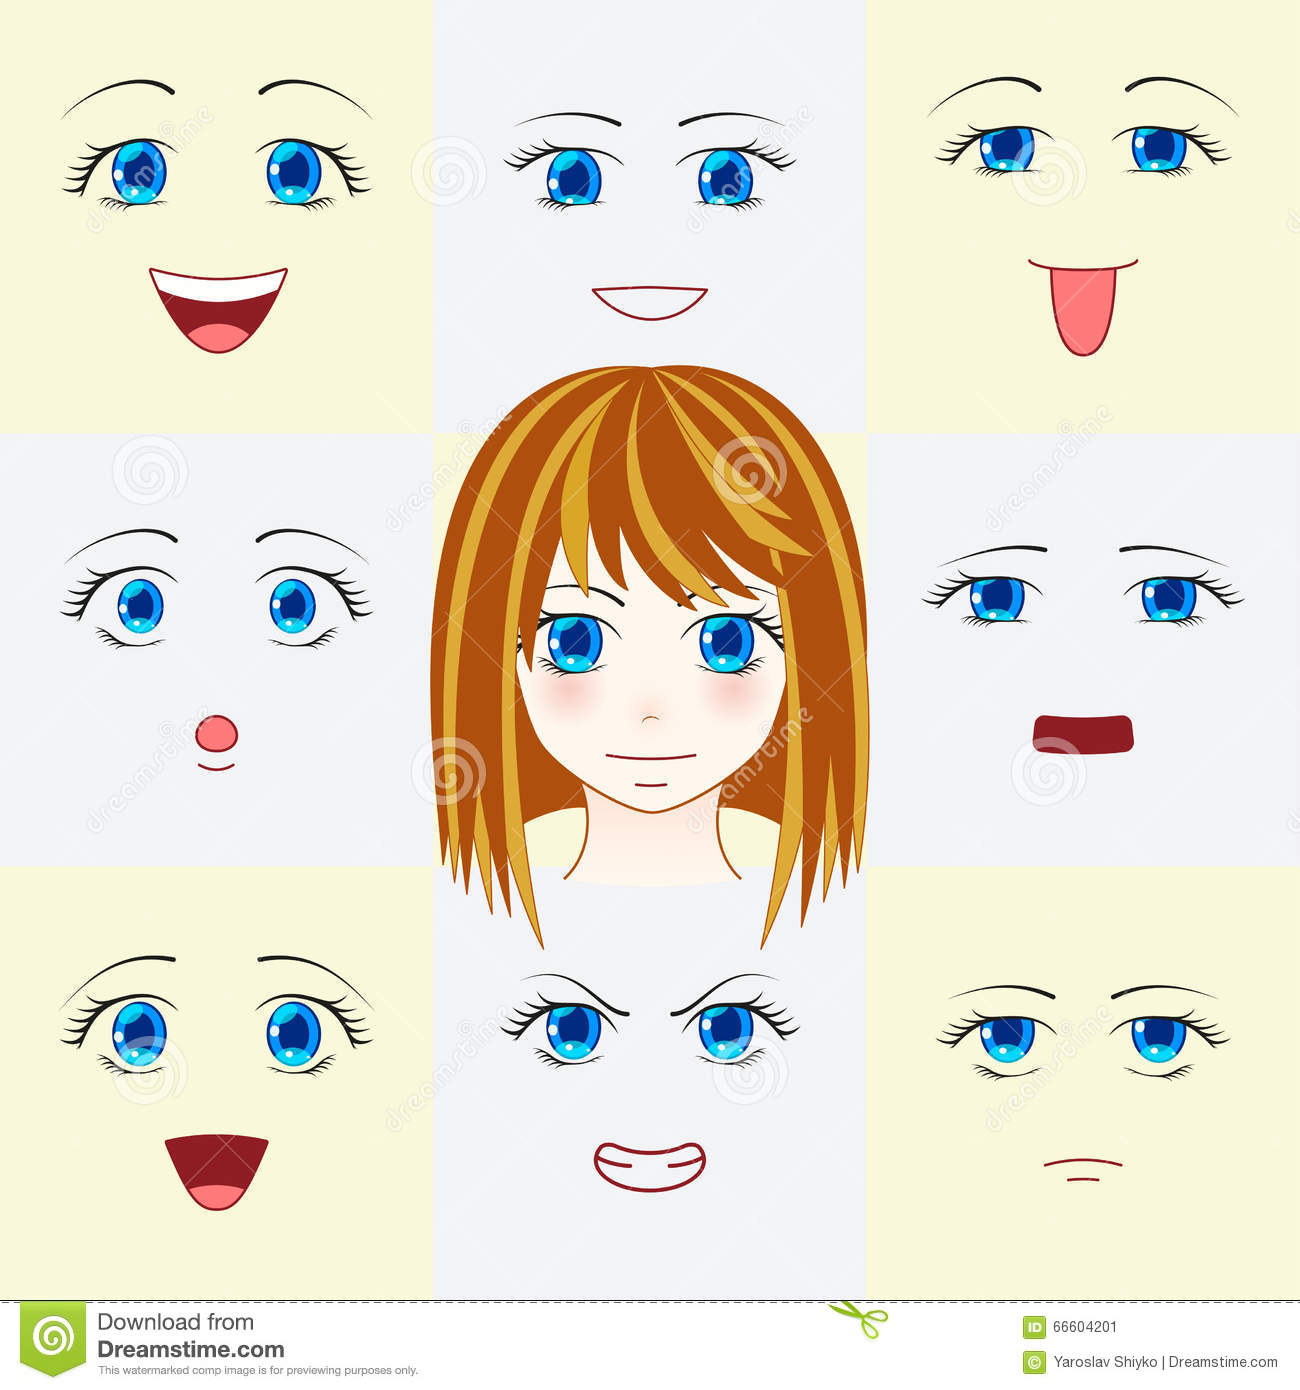 Set Of Faces In Manga Style Cute Anime Eyes And Mouths